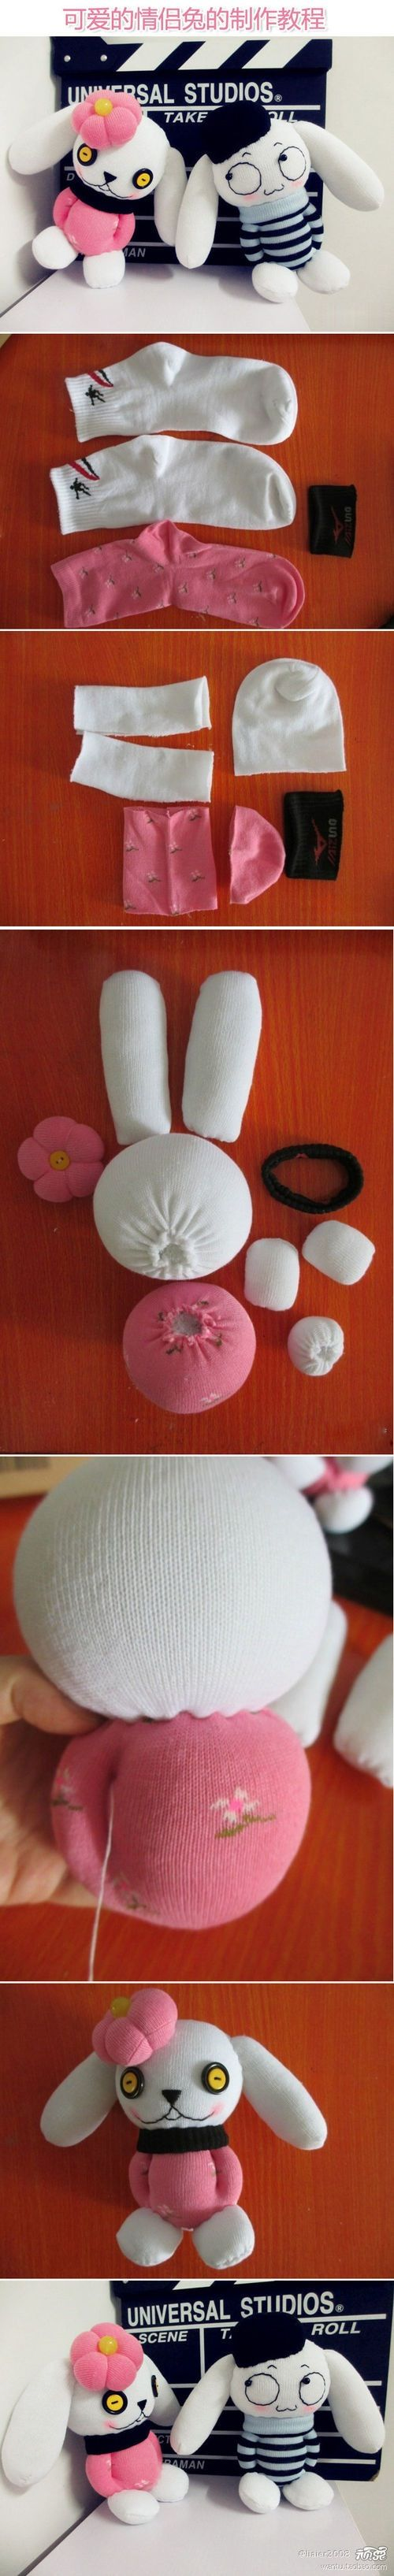 Cute toys to make